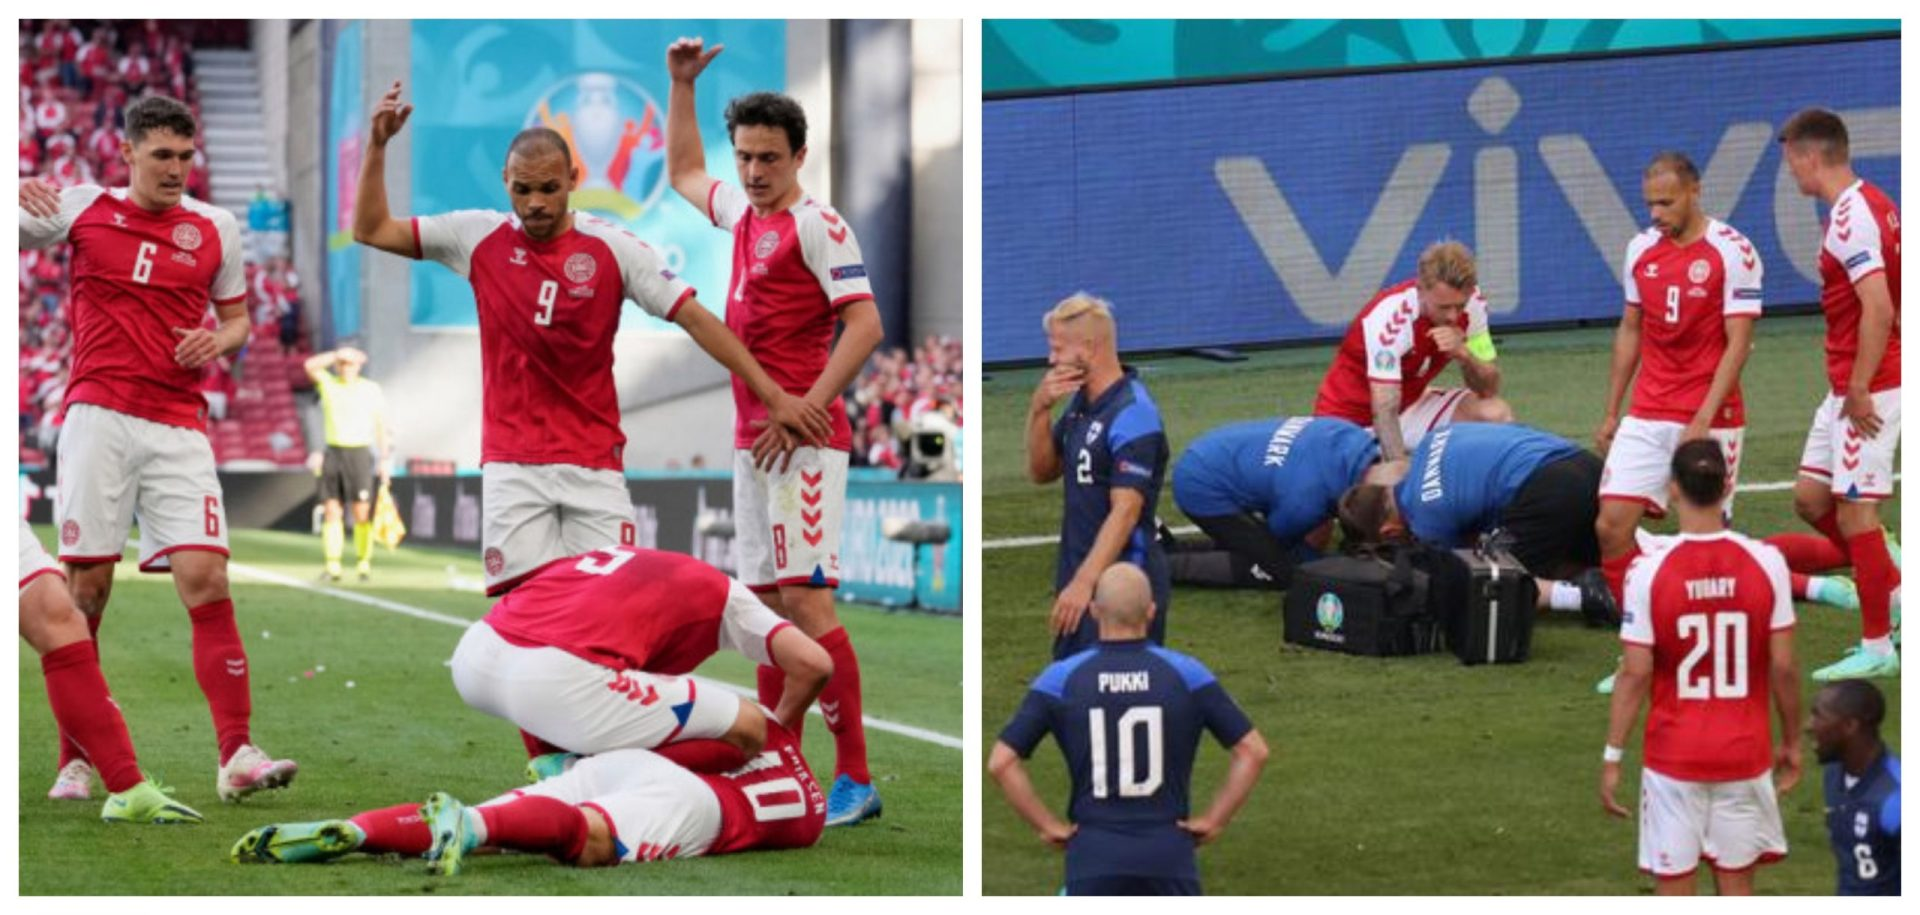 VIDEO: Denmark vs Finland suspended after Christian Eriksen collapses on field - THE SPORTS ROOM